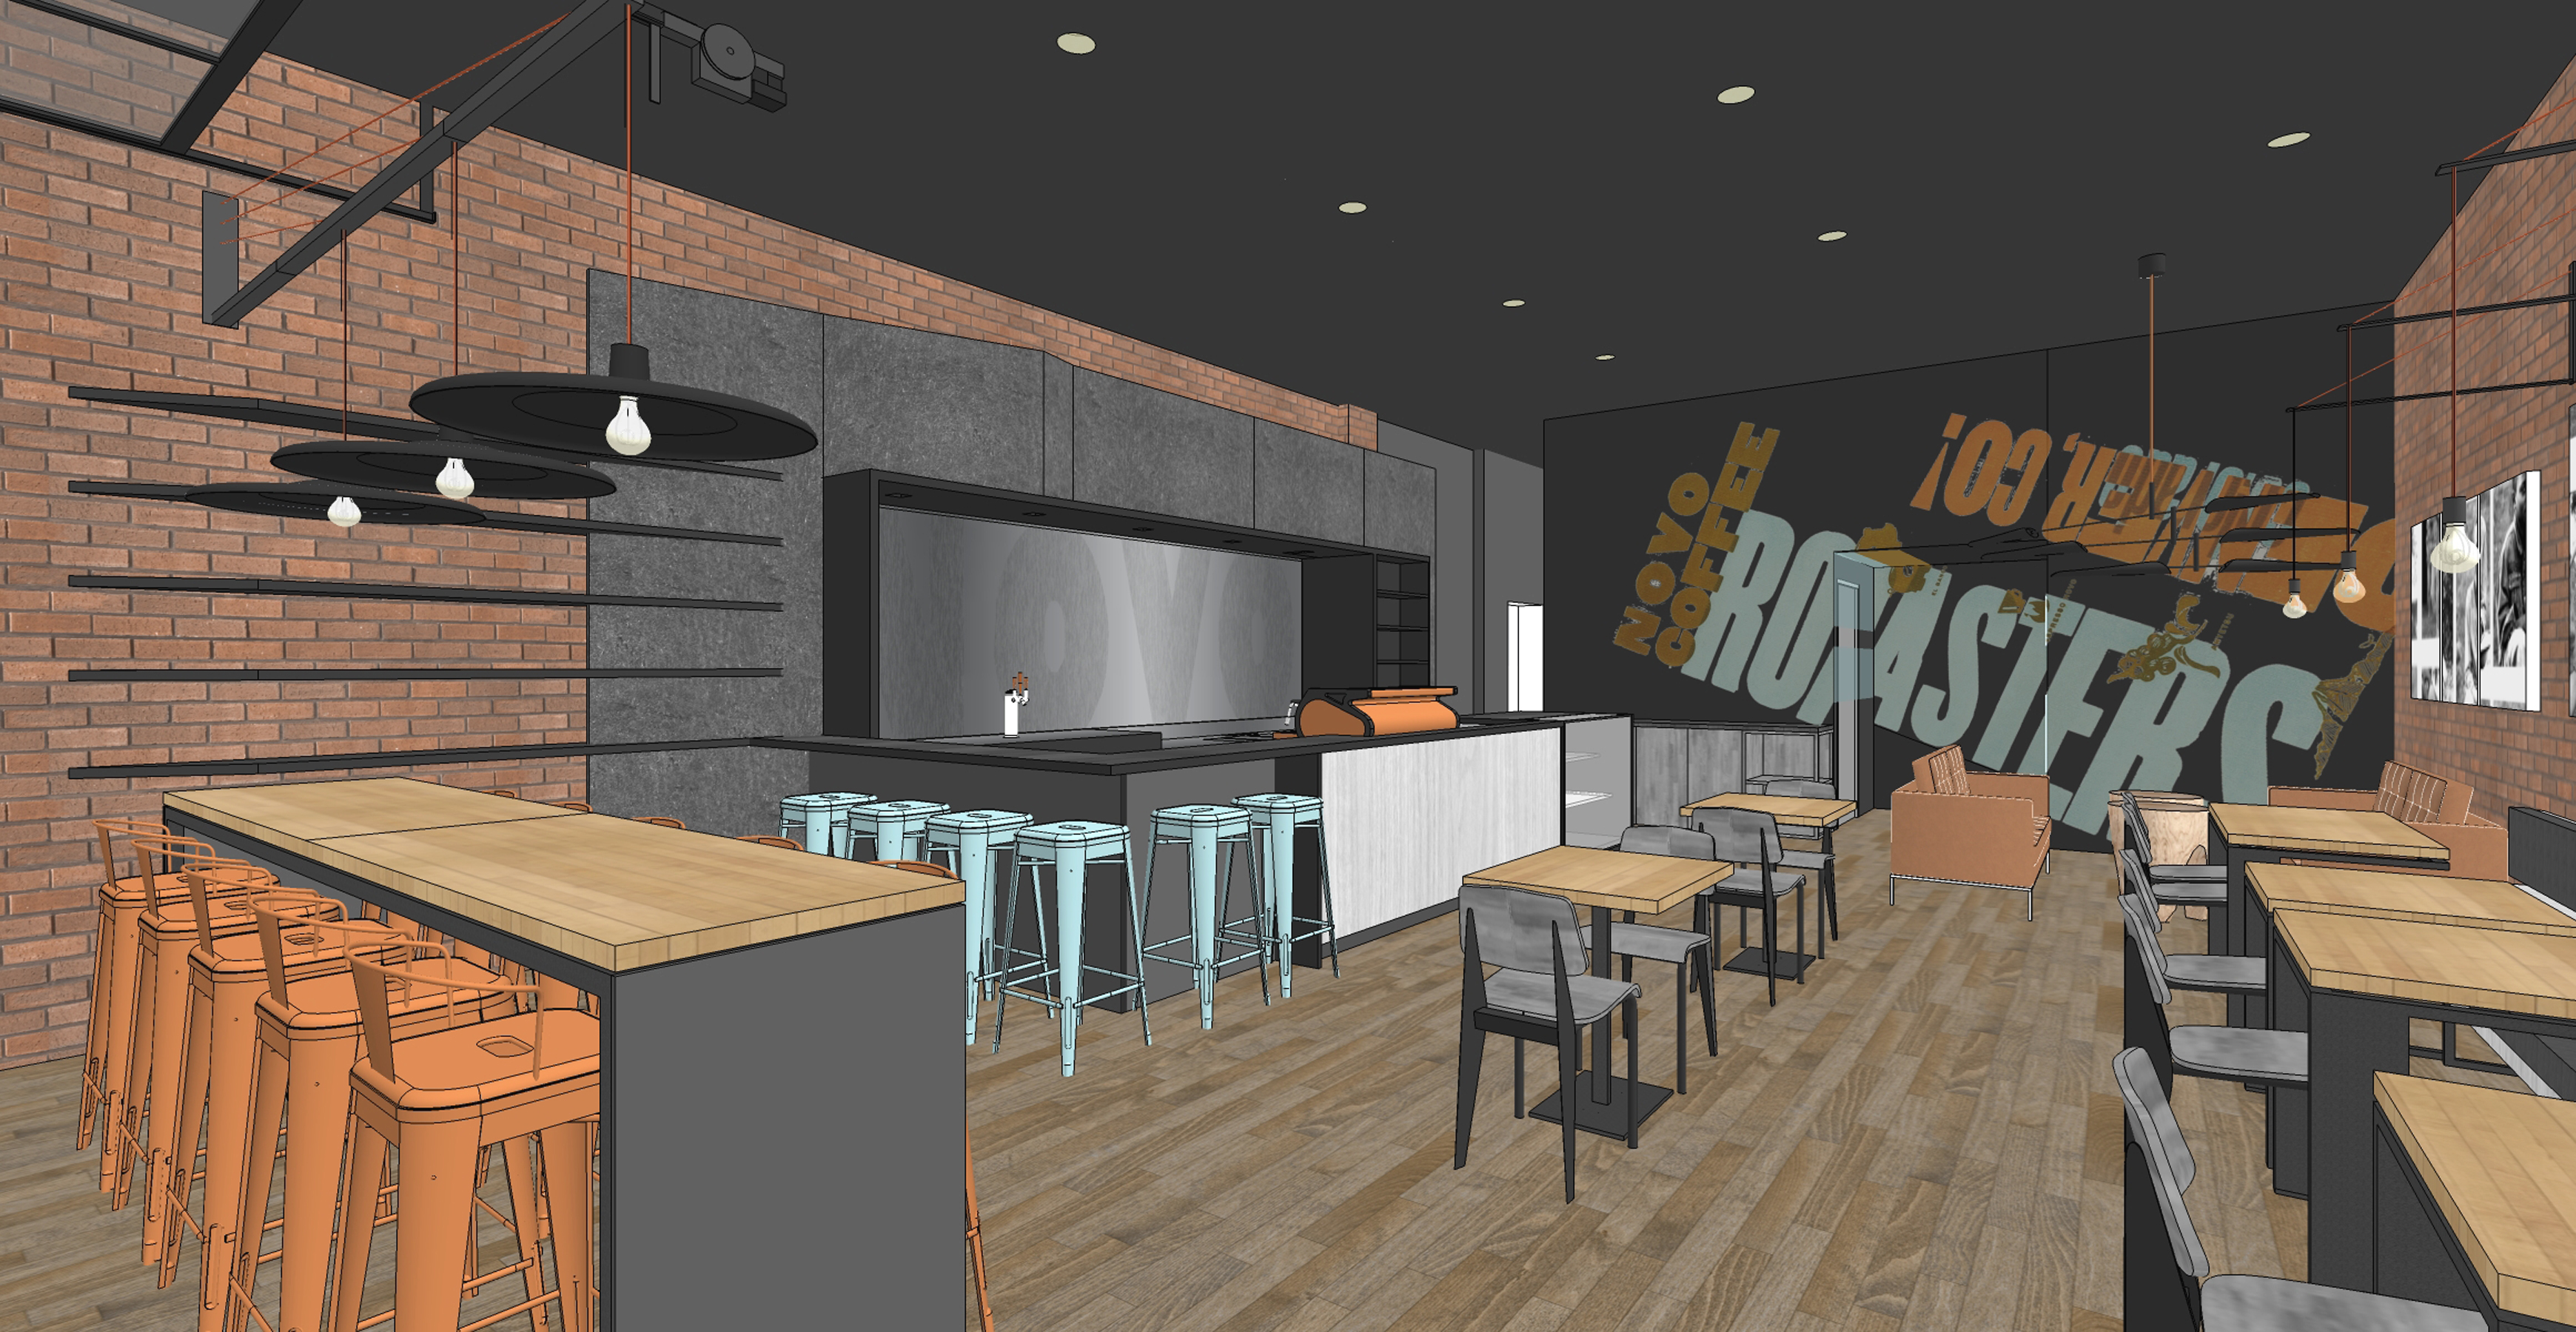 Novo Coffee shop 6th & Gilpin Concept view from entrance open studio architecture OSA